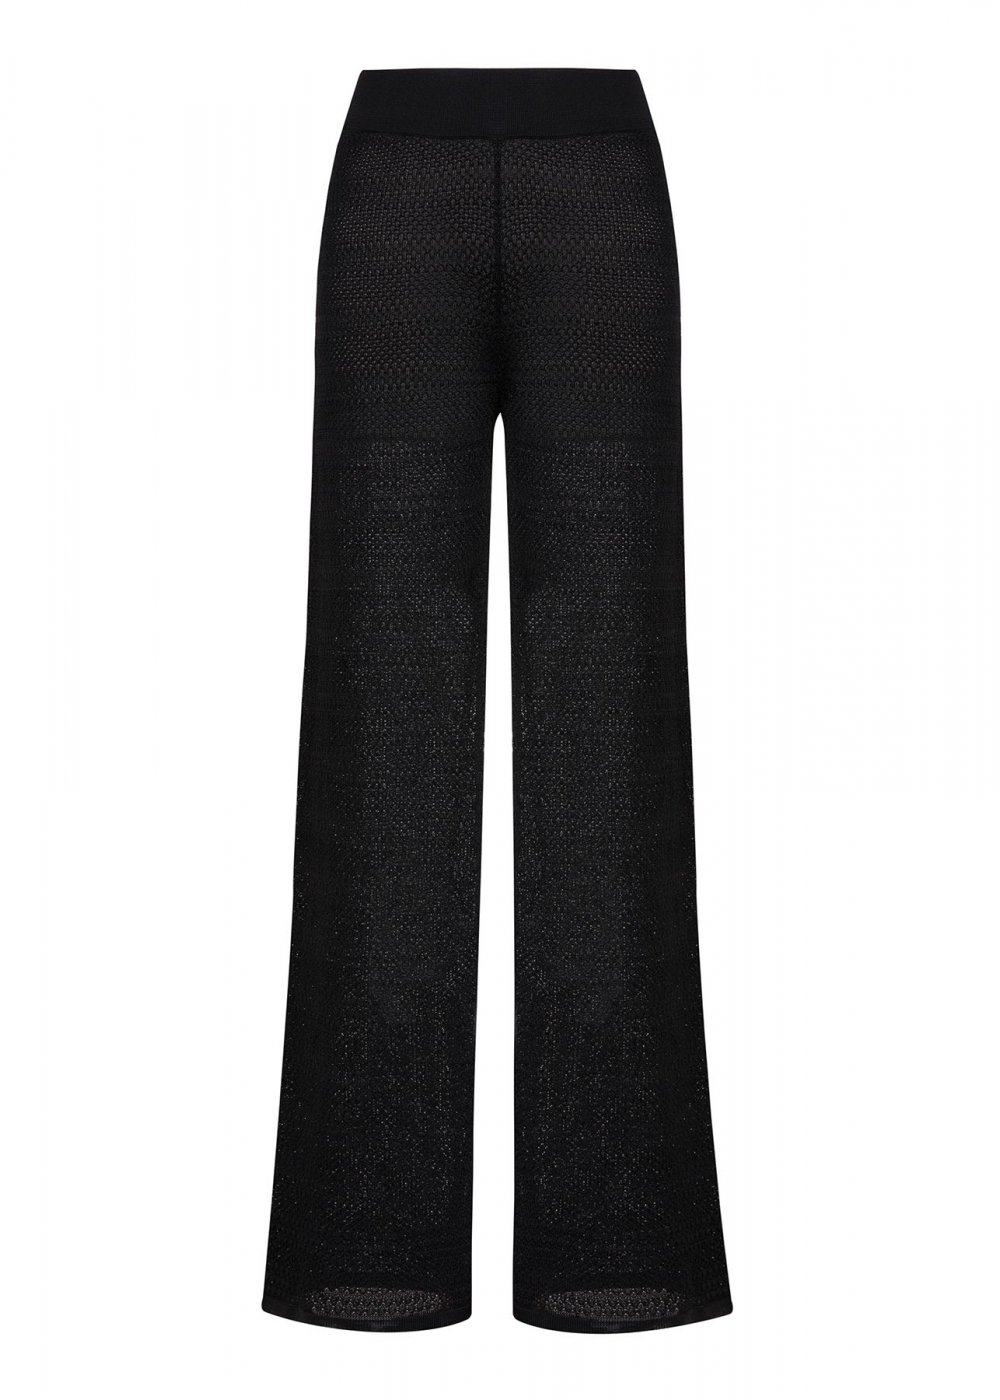 POINTELLE BLACK KNITTED PANT